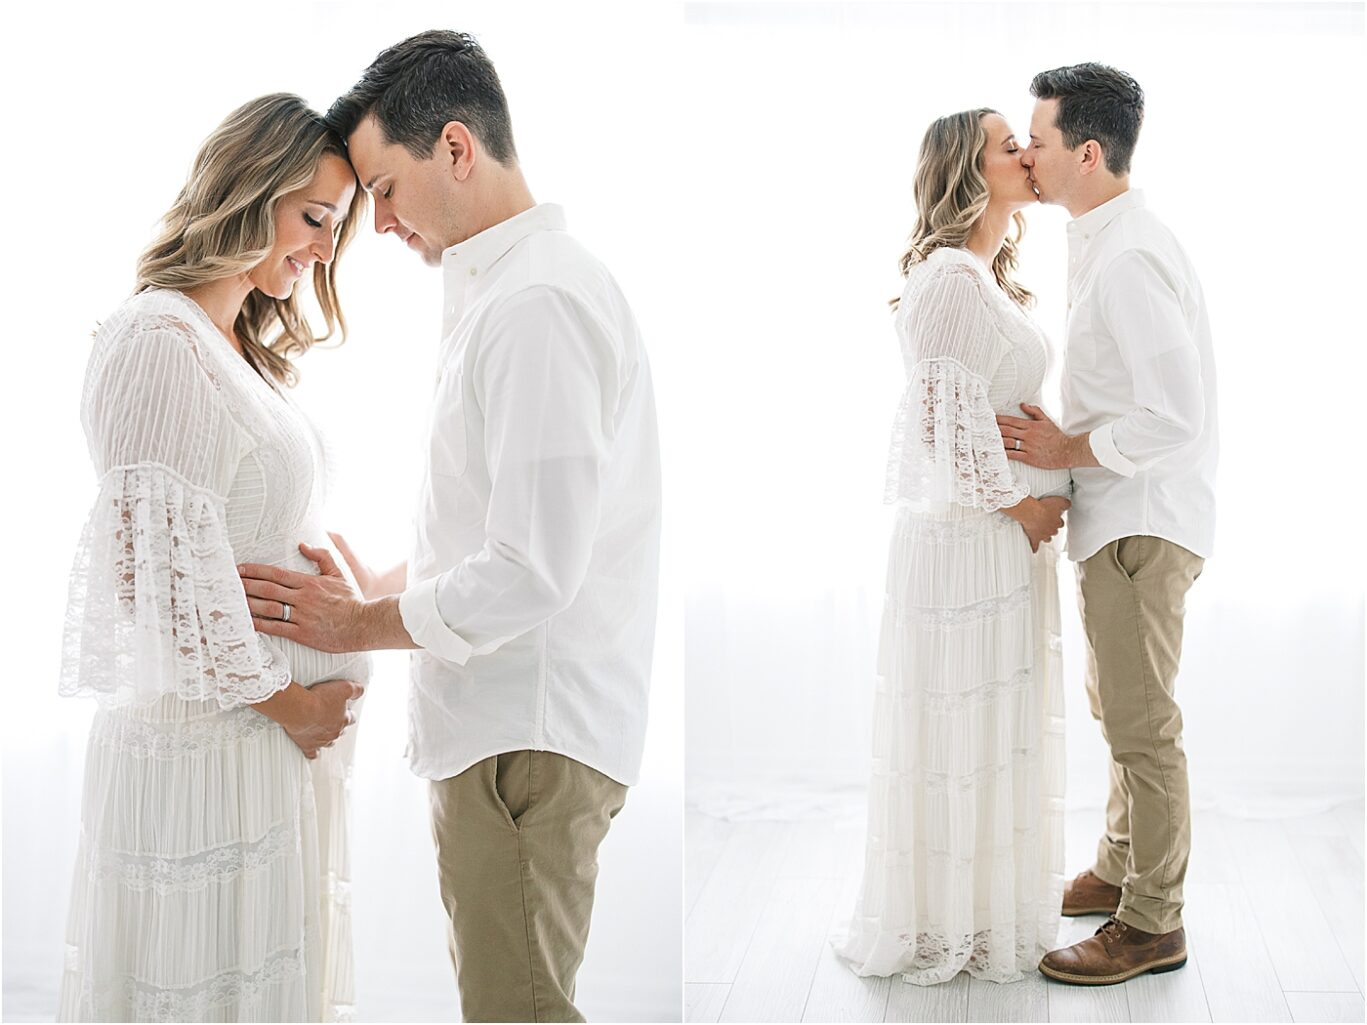 Studio maternity session in Fishers IN with Lindsay Konopa Photography